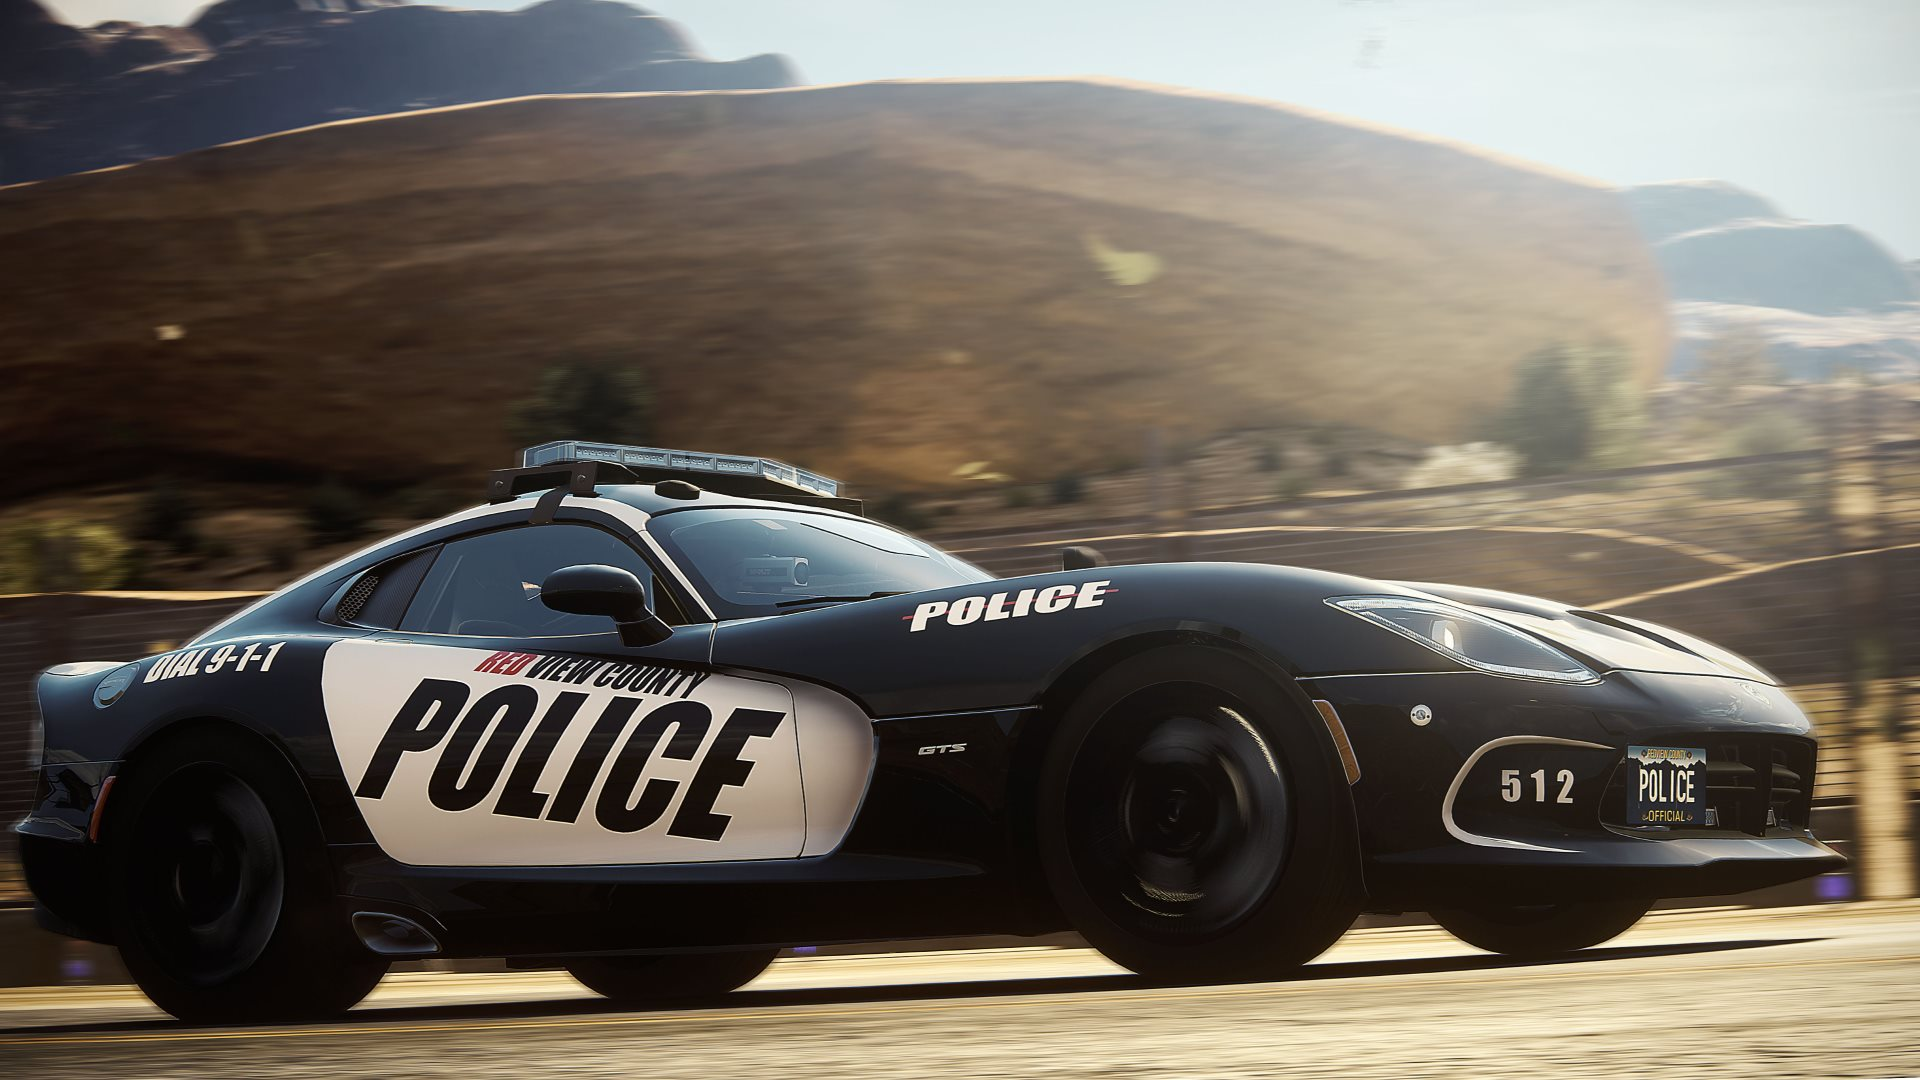 WallpapersWide.com | Need For Speed HD Desktop Wallpapers for ...